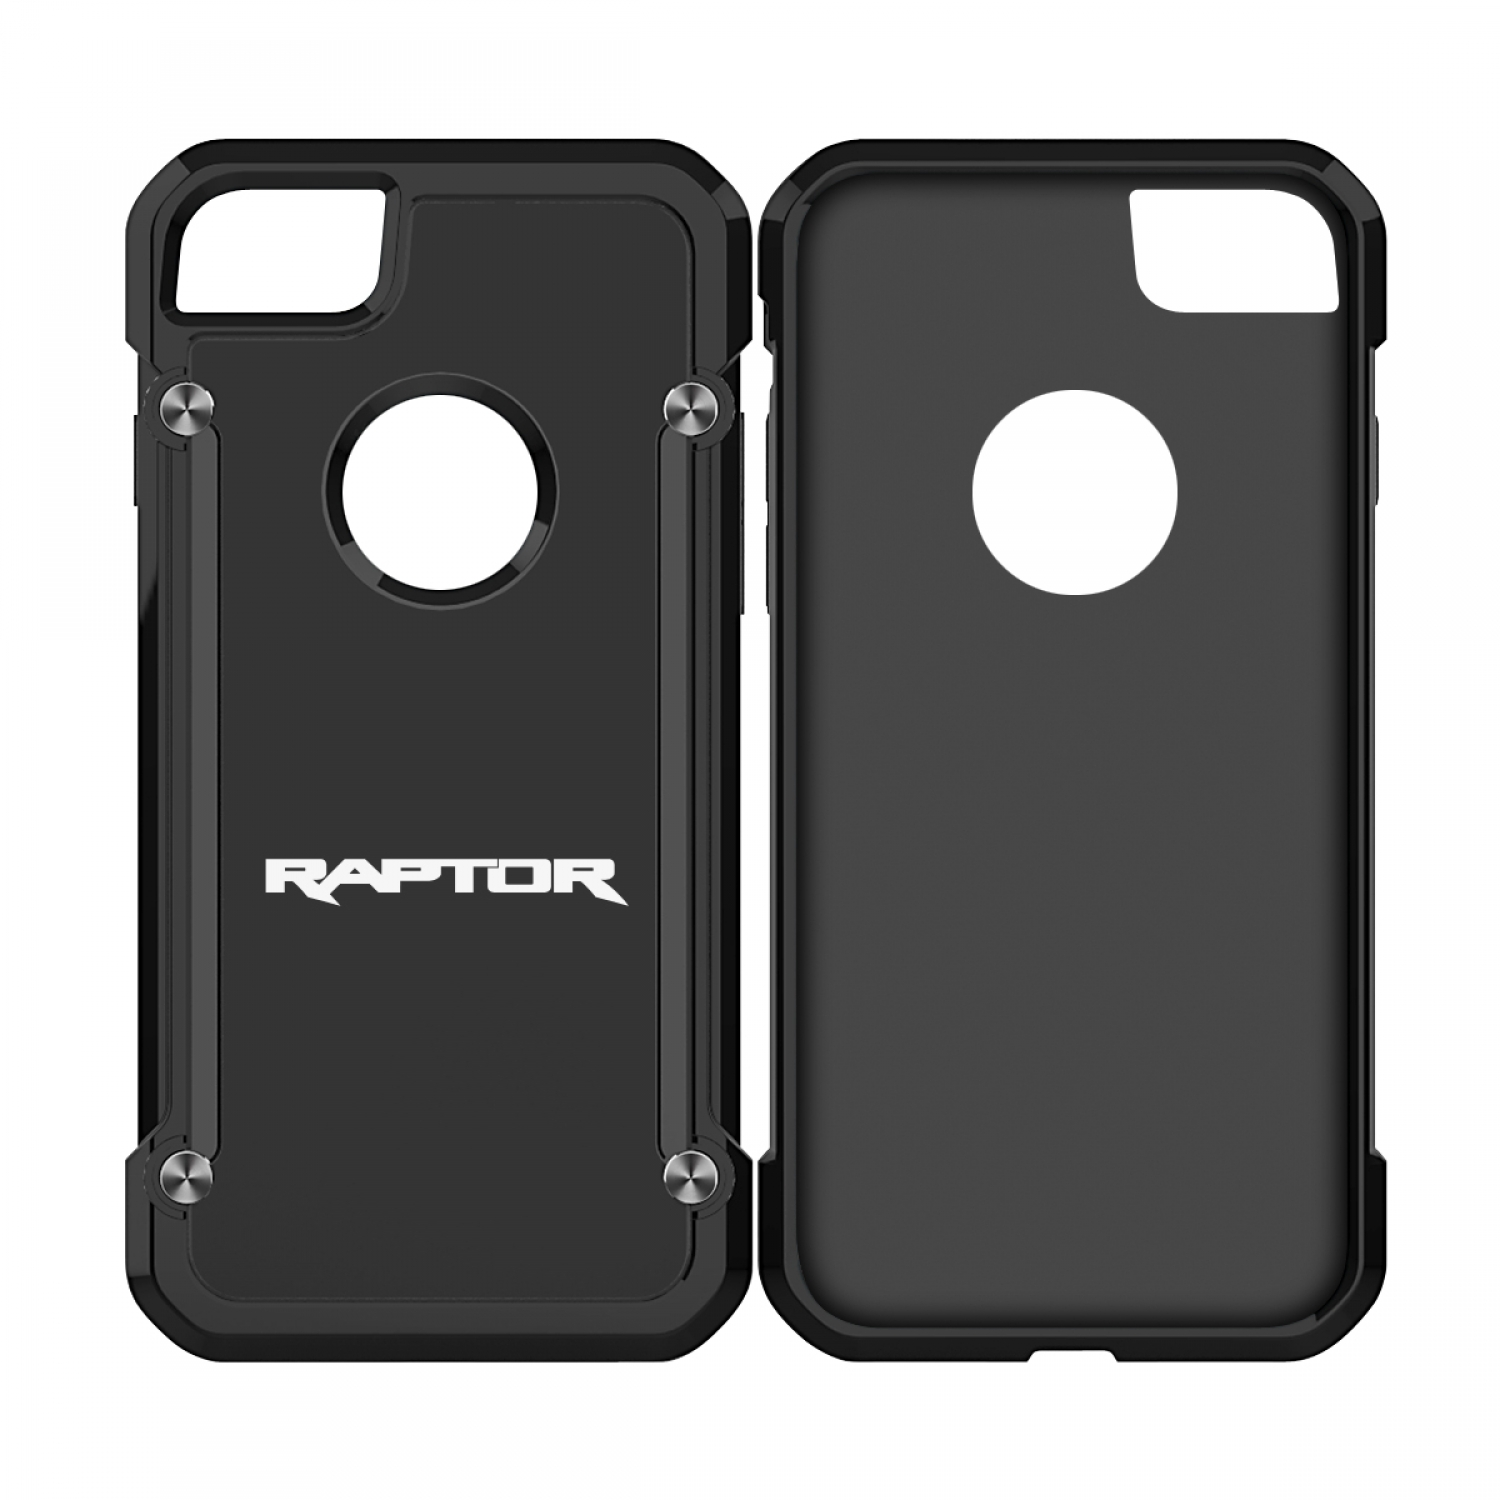 Ford F150 Raptor iPhone 7 iPhone 8 TPU Shockproof Black Cell Phone Case